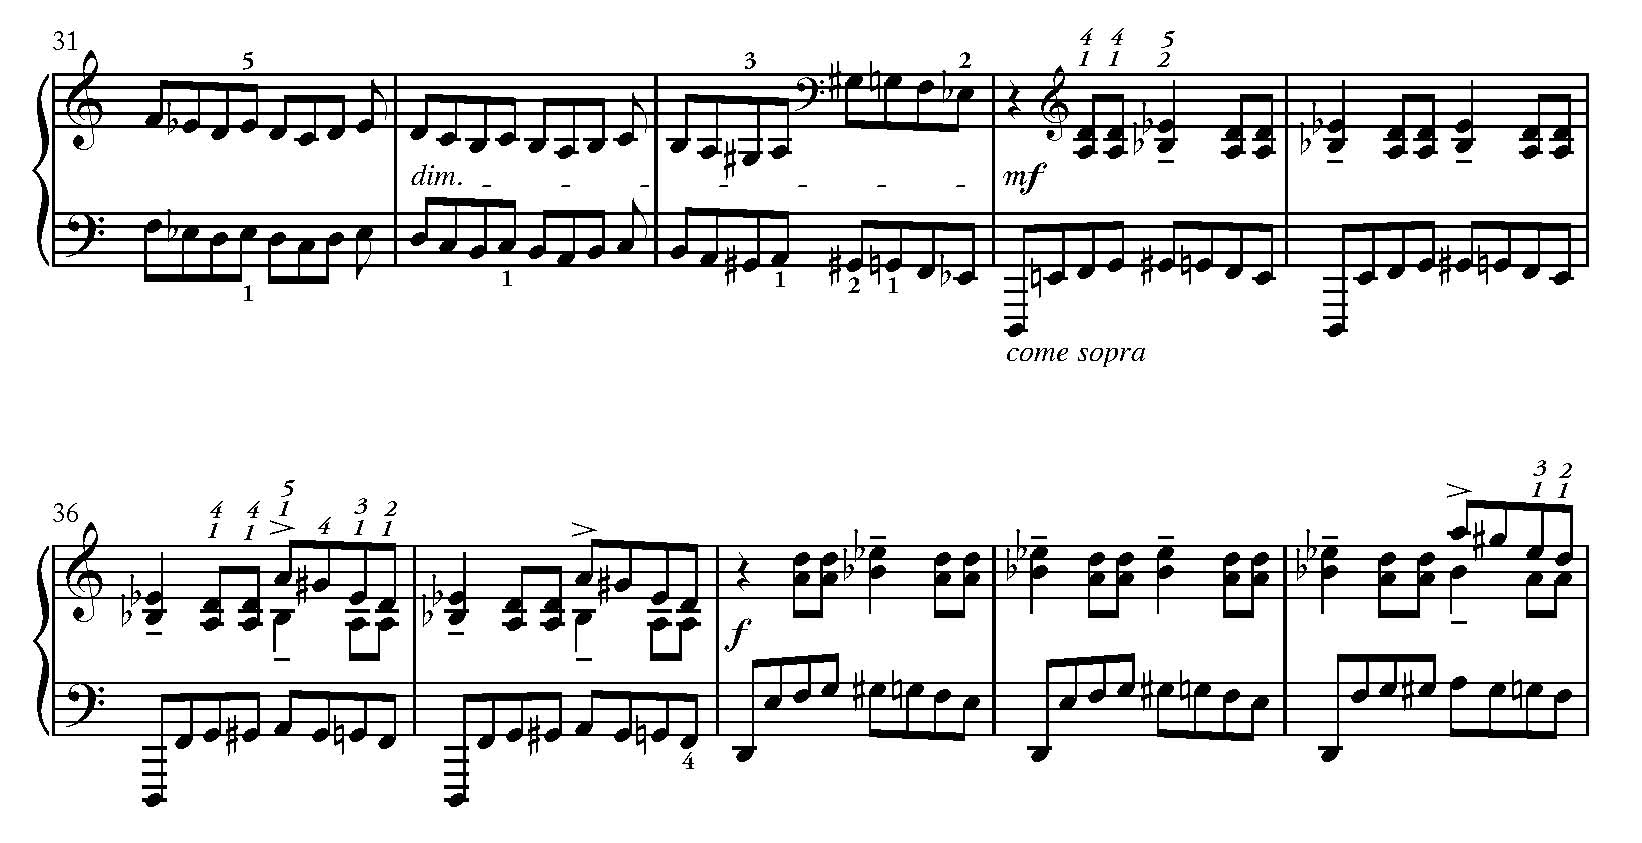 More or less – Bartók's well-regulated markings of his piano